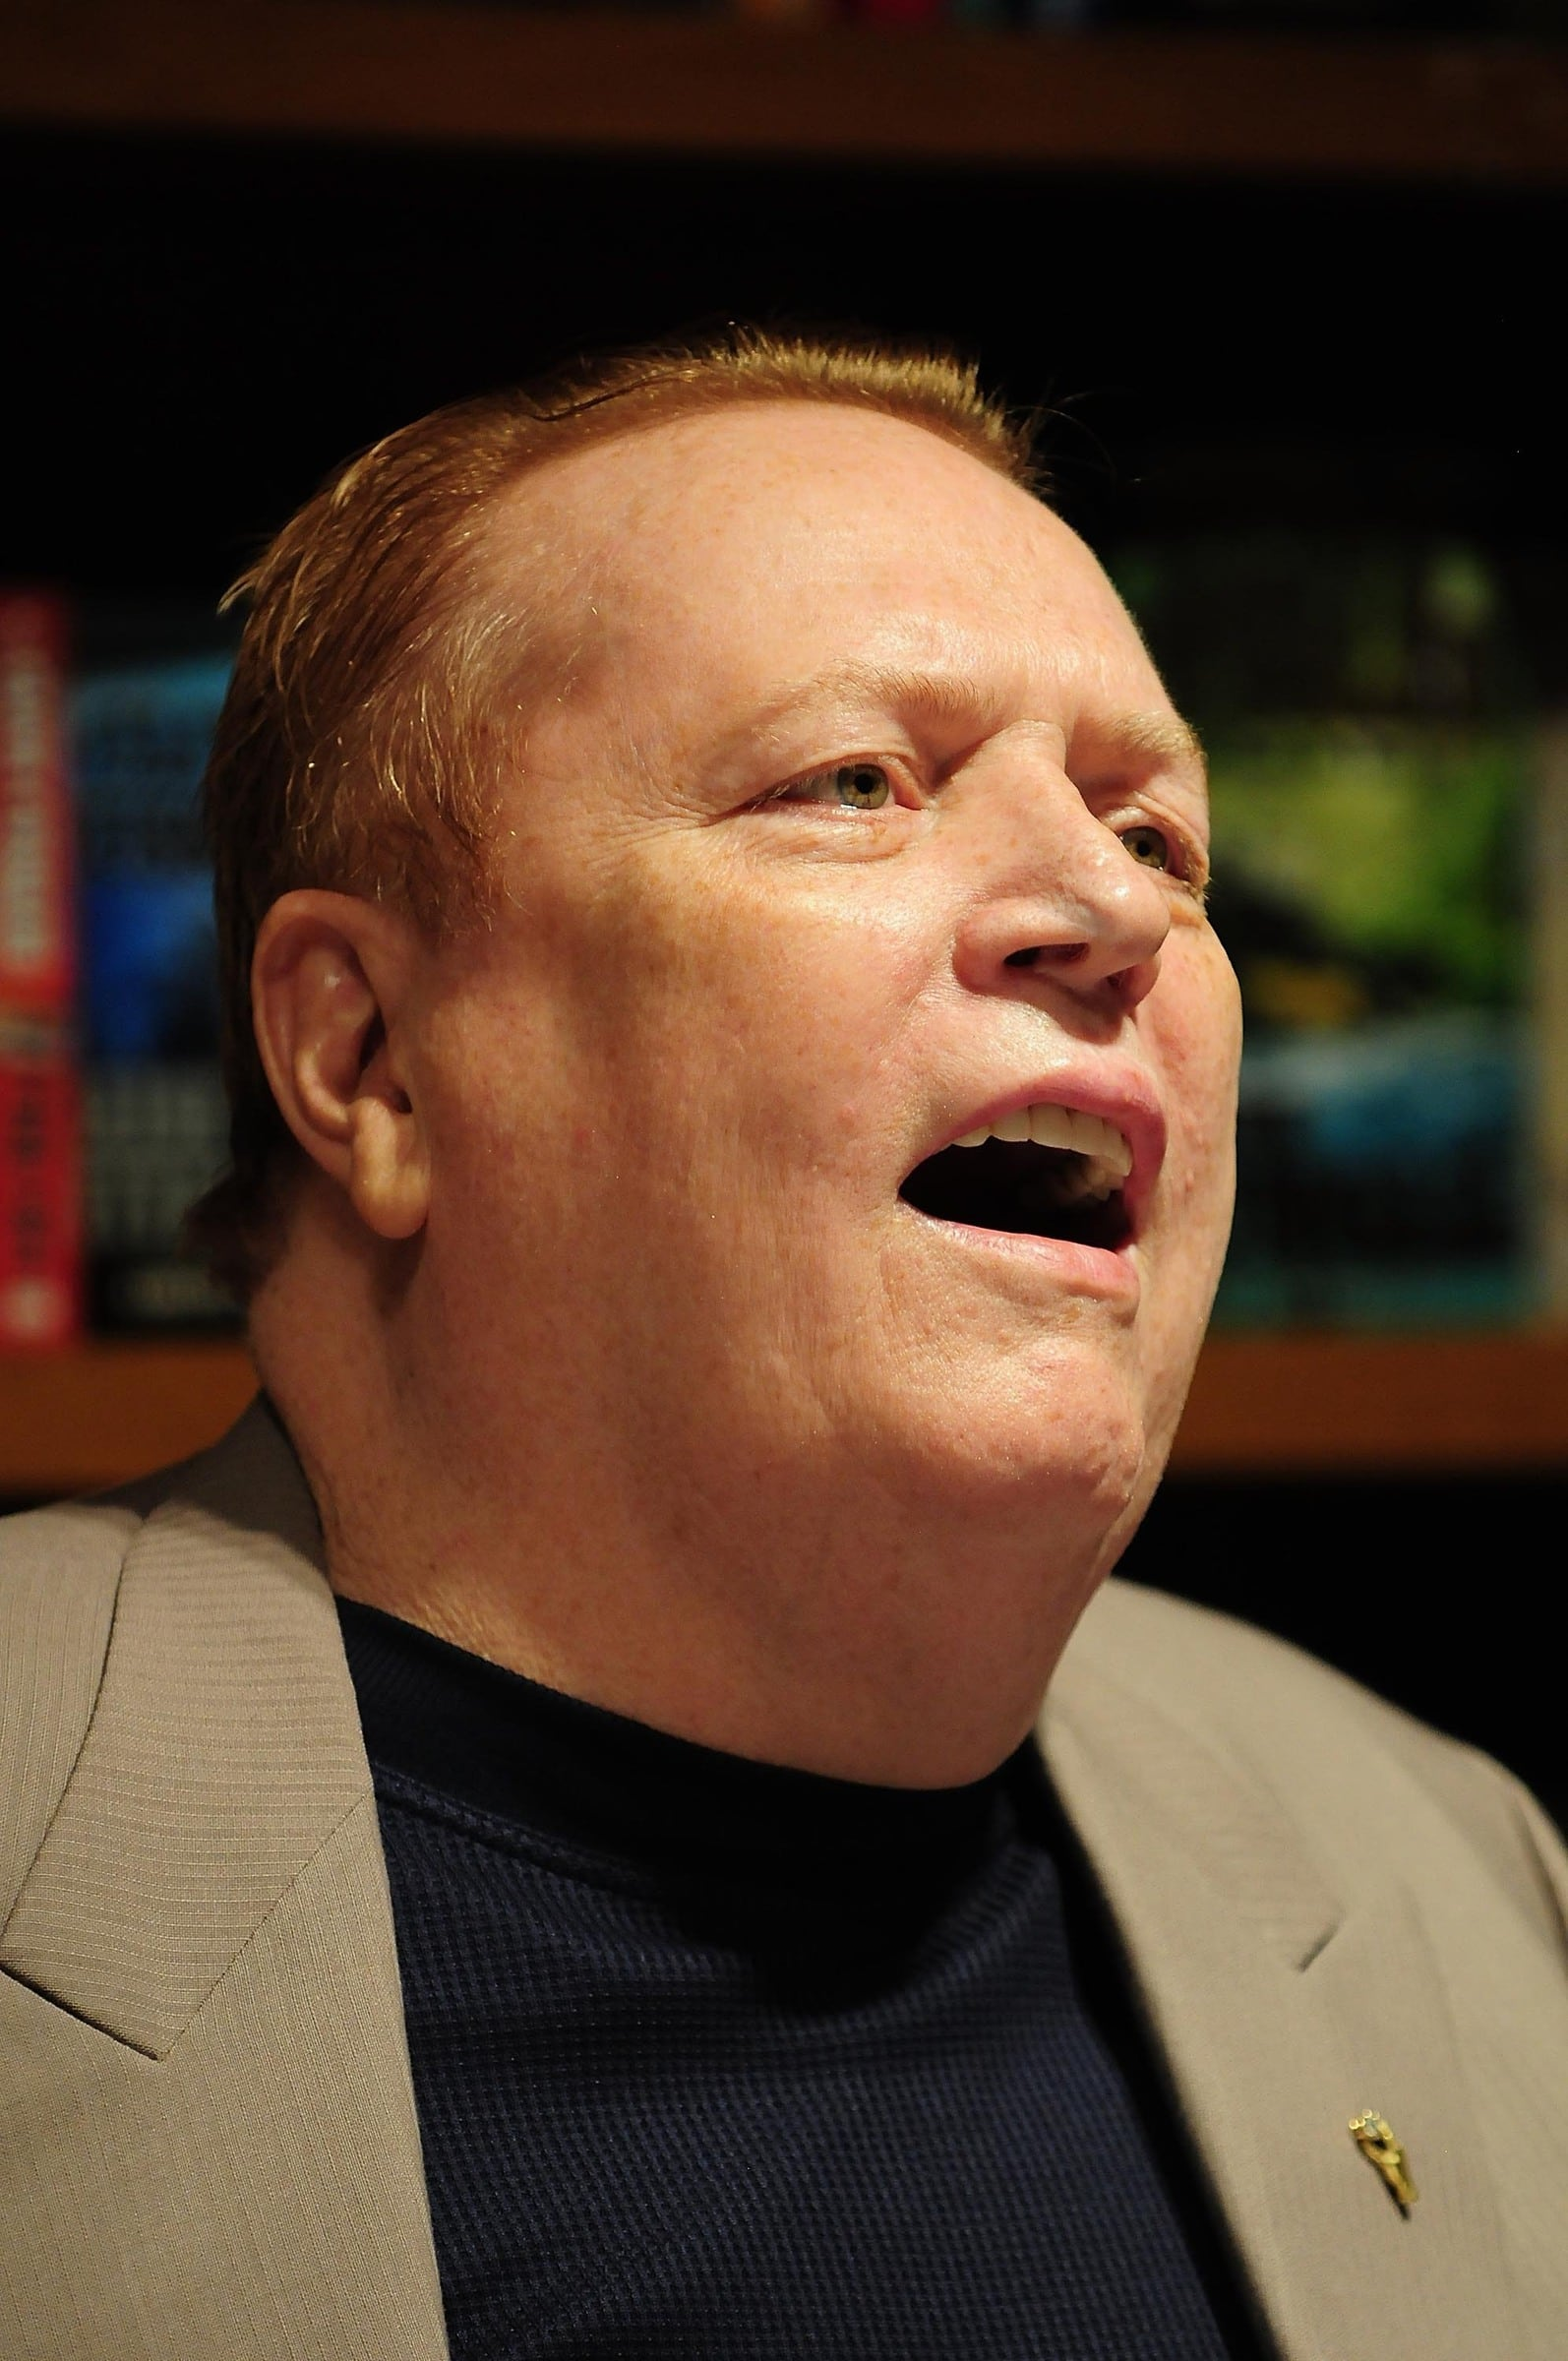 Larry Flynt To Daniel Tosh Run My Company The Hollywood Gossip